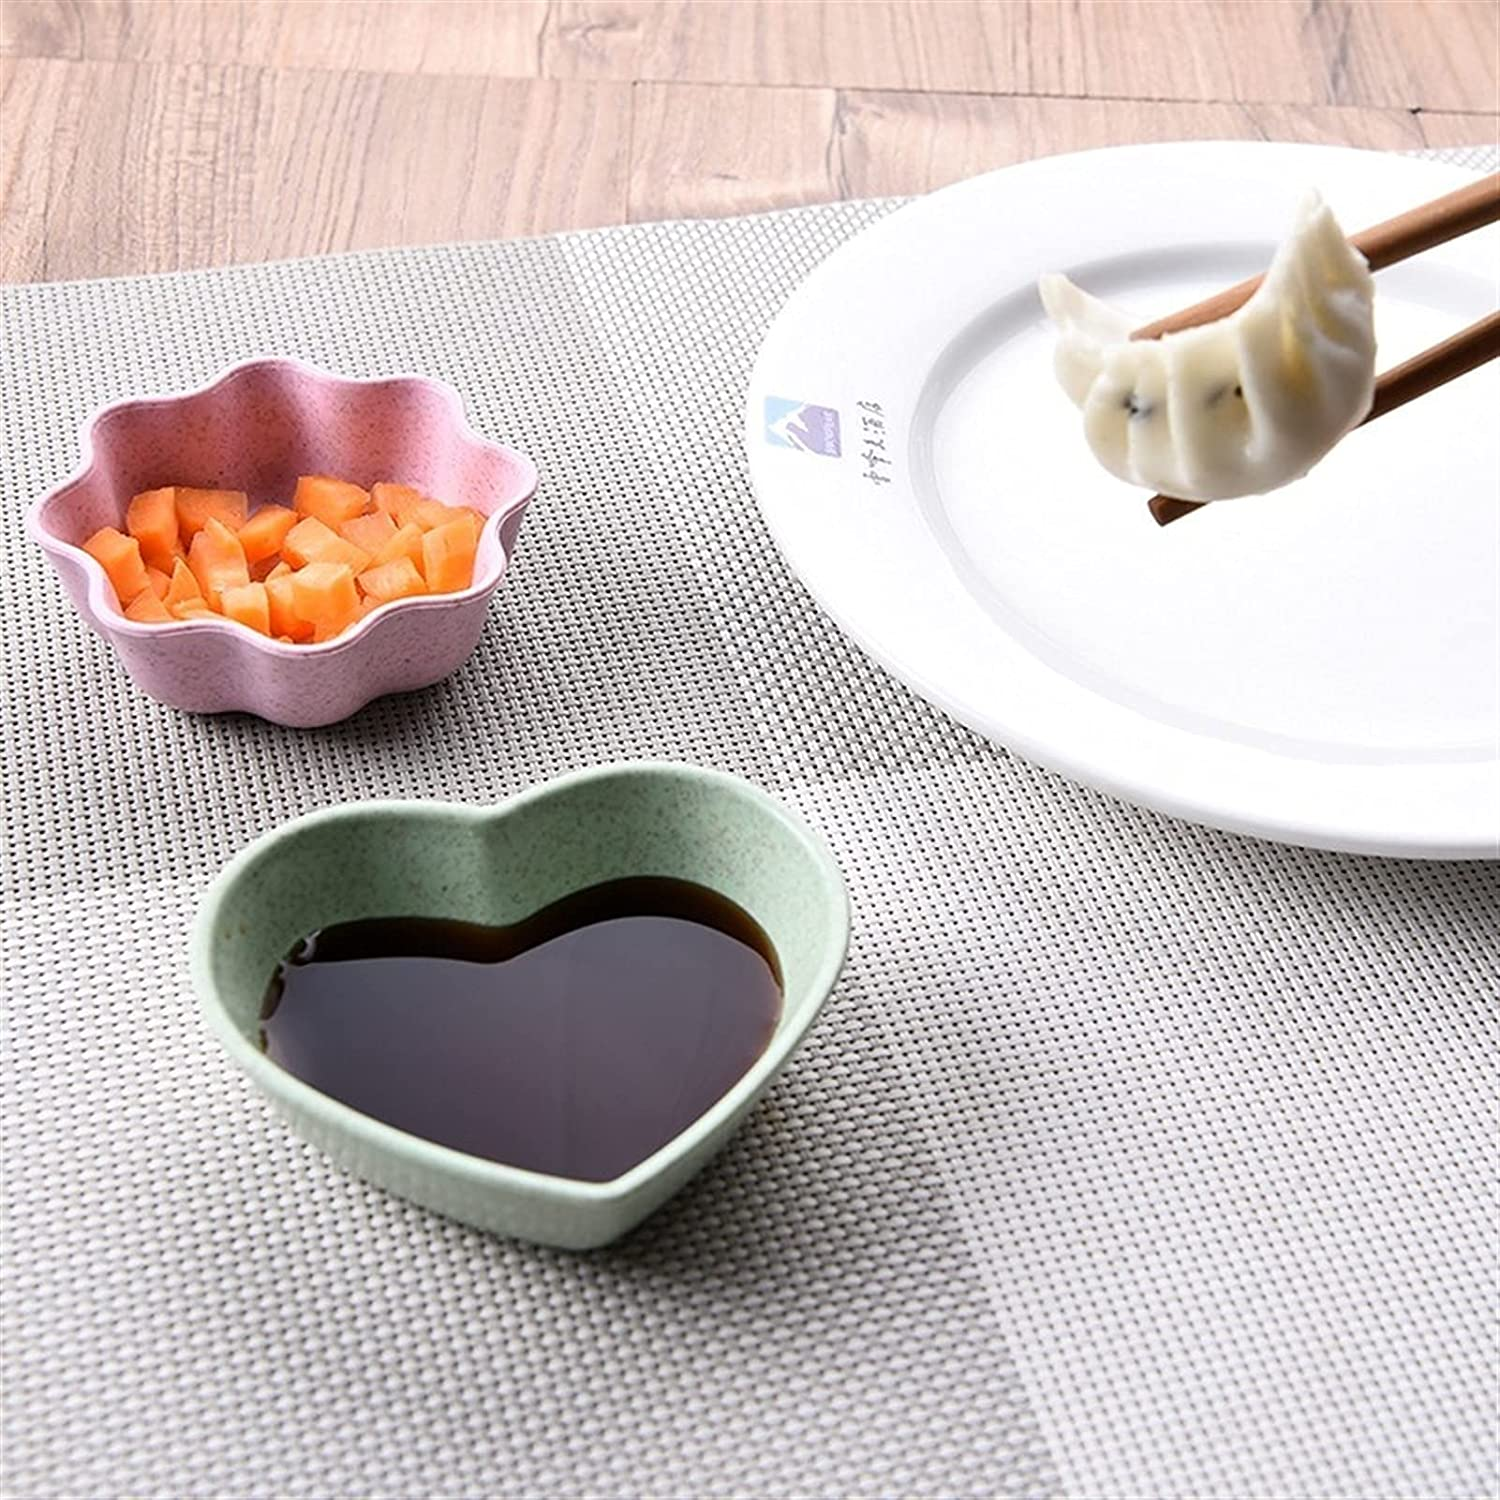 appetizer Max 83% OFF plates 3PCS Wheat Straw Great interest Household Seasoning Di Kitchen